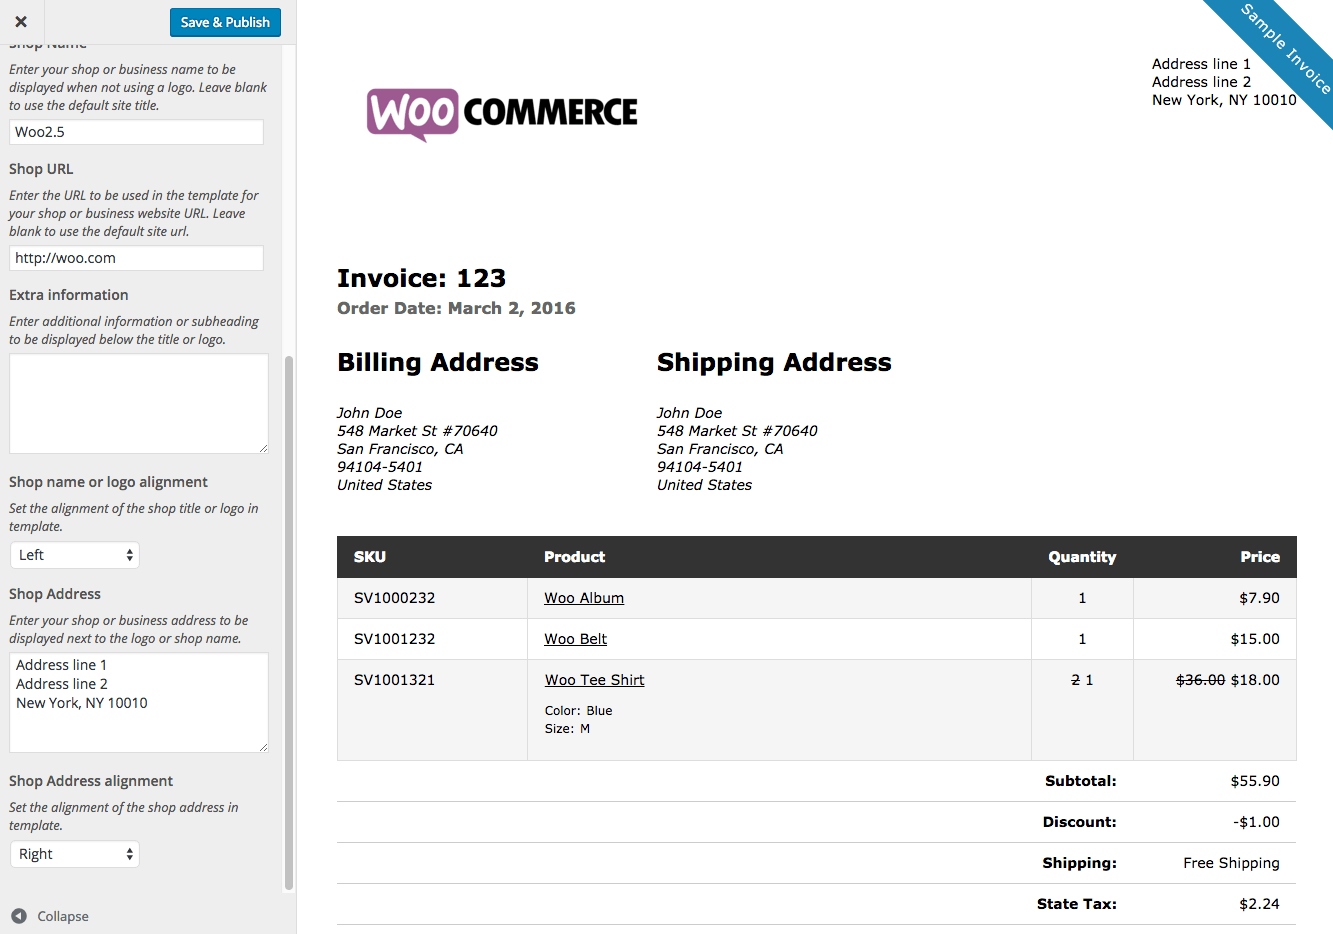 Maidofhonortoastus  Pretty Woocommerce Print Invoices Amp Packing Lists  Woocommerce Docs With Licious Woocommerce Print Invoices  Packing Lists Customizer With Endearing Invoice Pricing On Cars Also Html Invoice In Addition Invoice What Is And How Do I Send An Invoice On Paypal As Well As What Is The Dealer Invoice Price Additionally Invoice Finance Company From Docswoocommercecom With Maidofhonortoastus  Licious Woocommerce Print Invoices Amp Packing Lists  Woocommerce Docs With Endearing Woocommerce Print Invoices  Packing Lists Customizer And Pretty Invoice Pricing On Cars Also Html Invoice In Addition Invoice What Is From Docswoocommercecom